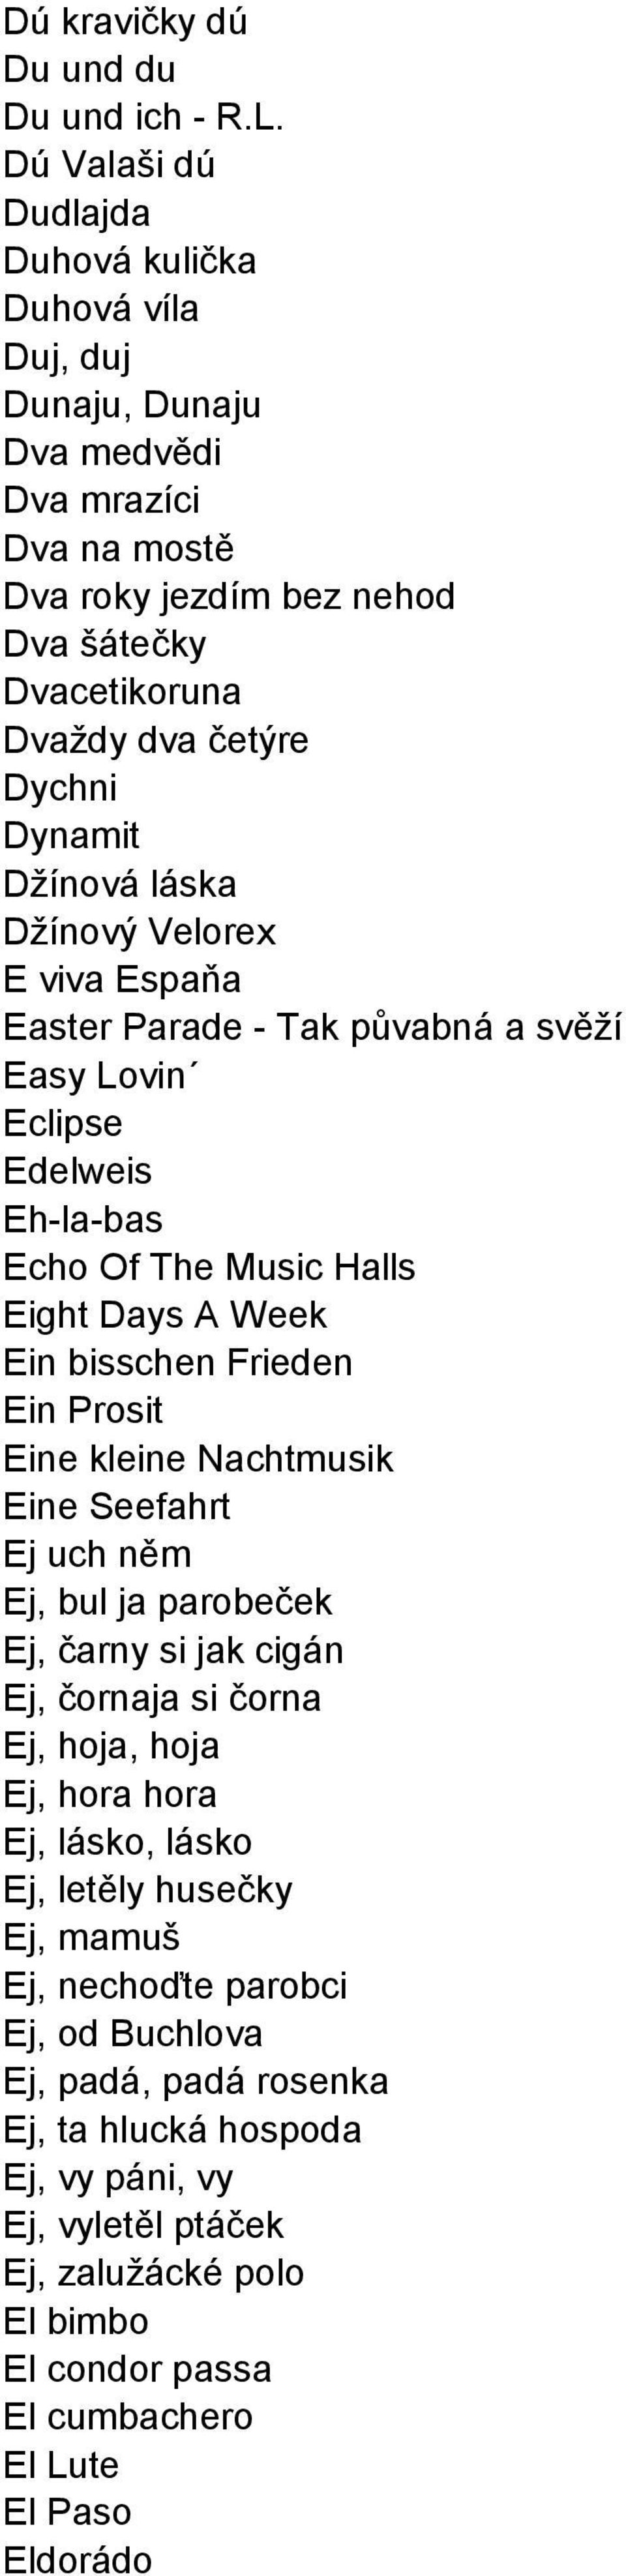 Džínová láska Džínový Velorex E viva Espaňa Easter Parade - Tak půvabná a svěží Easy Lovin Eclipse Edelweis Eh-la-bas Echo Of The Music Halls Eight Days A Week Ein bisschen Frieden Ein Prosit Eine